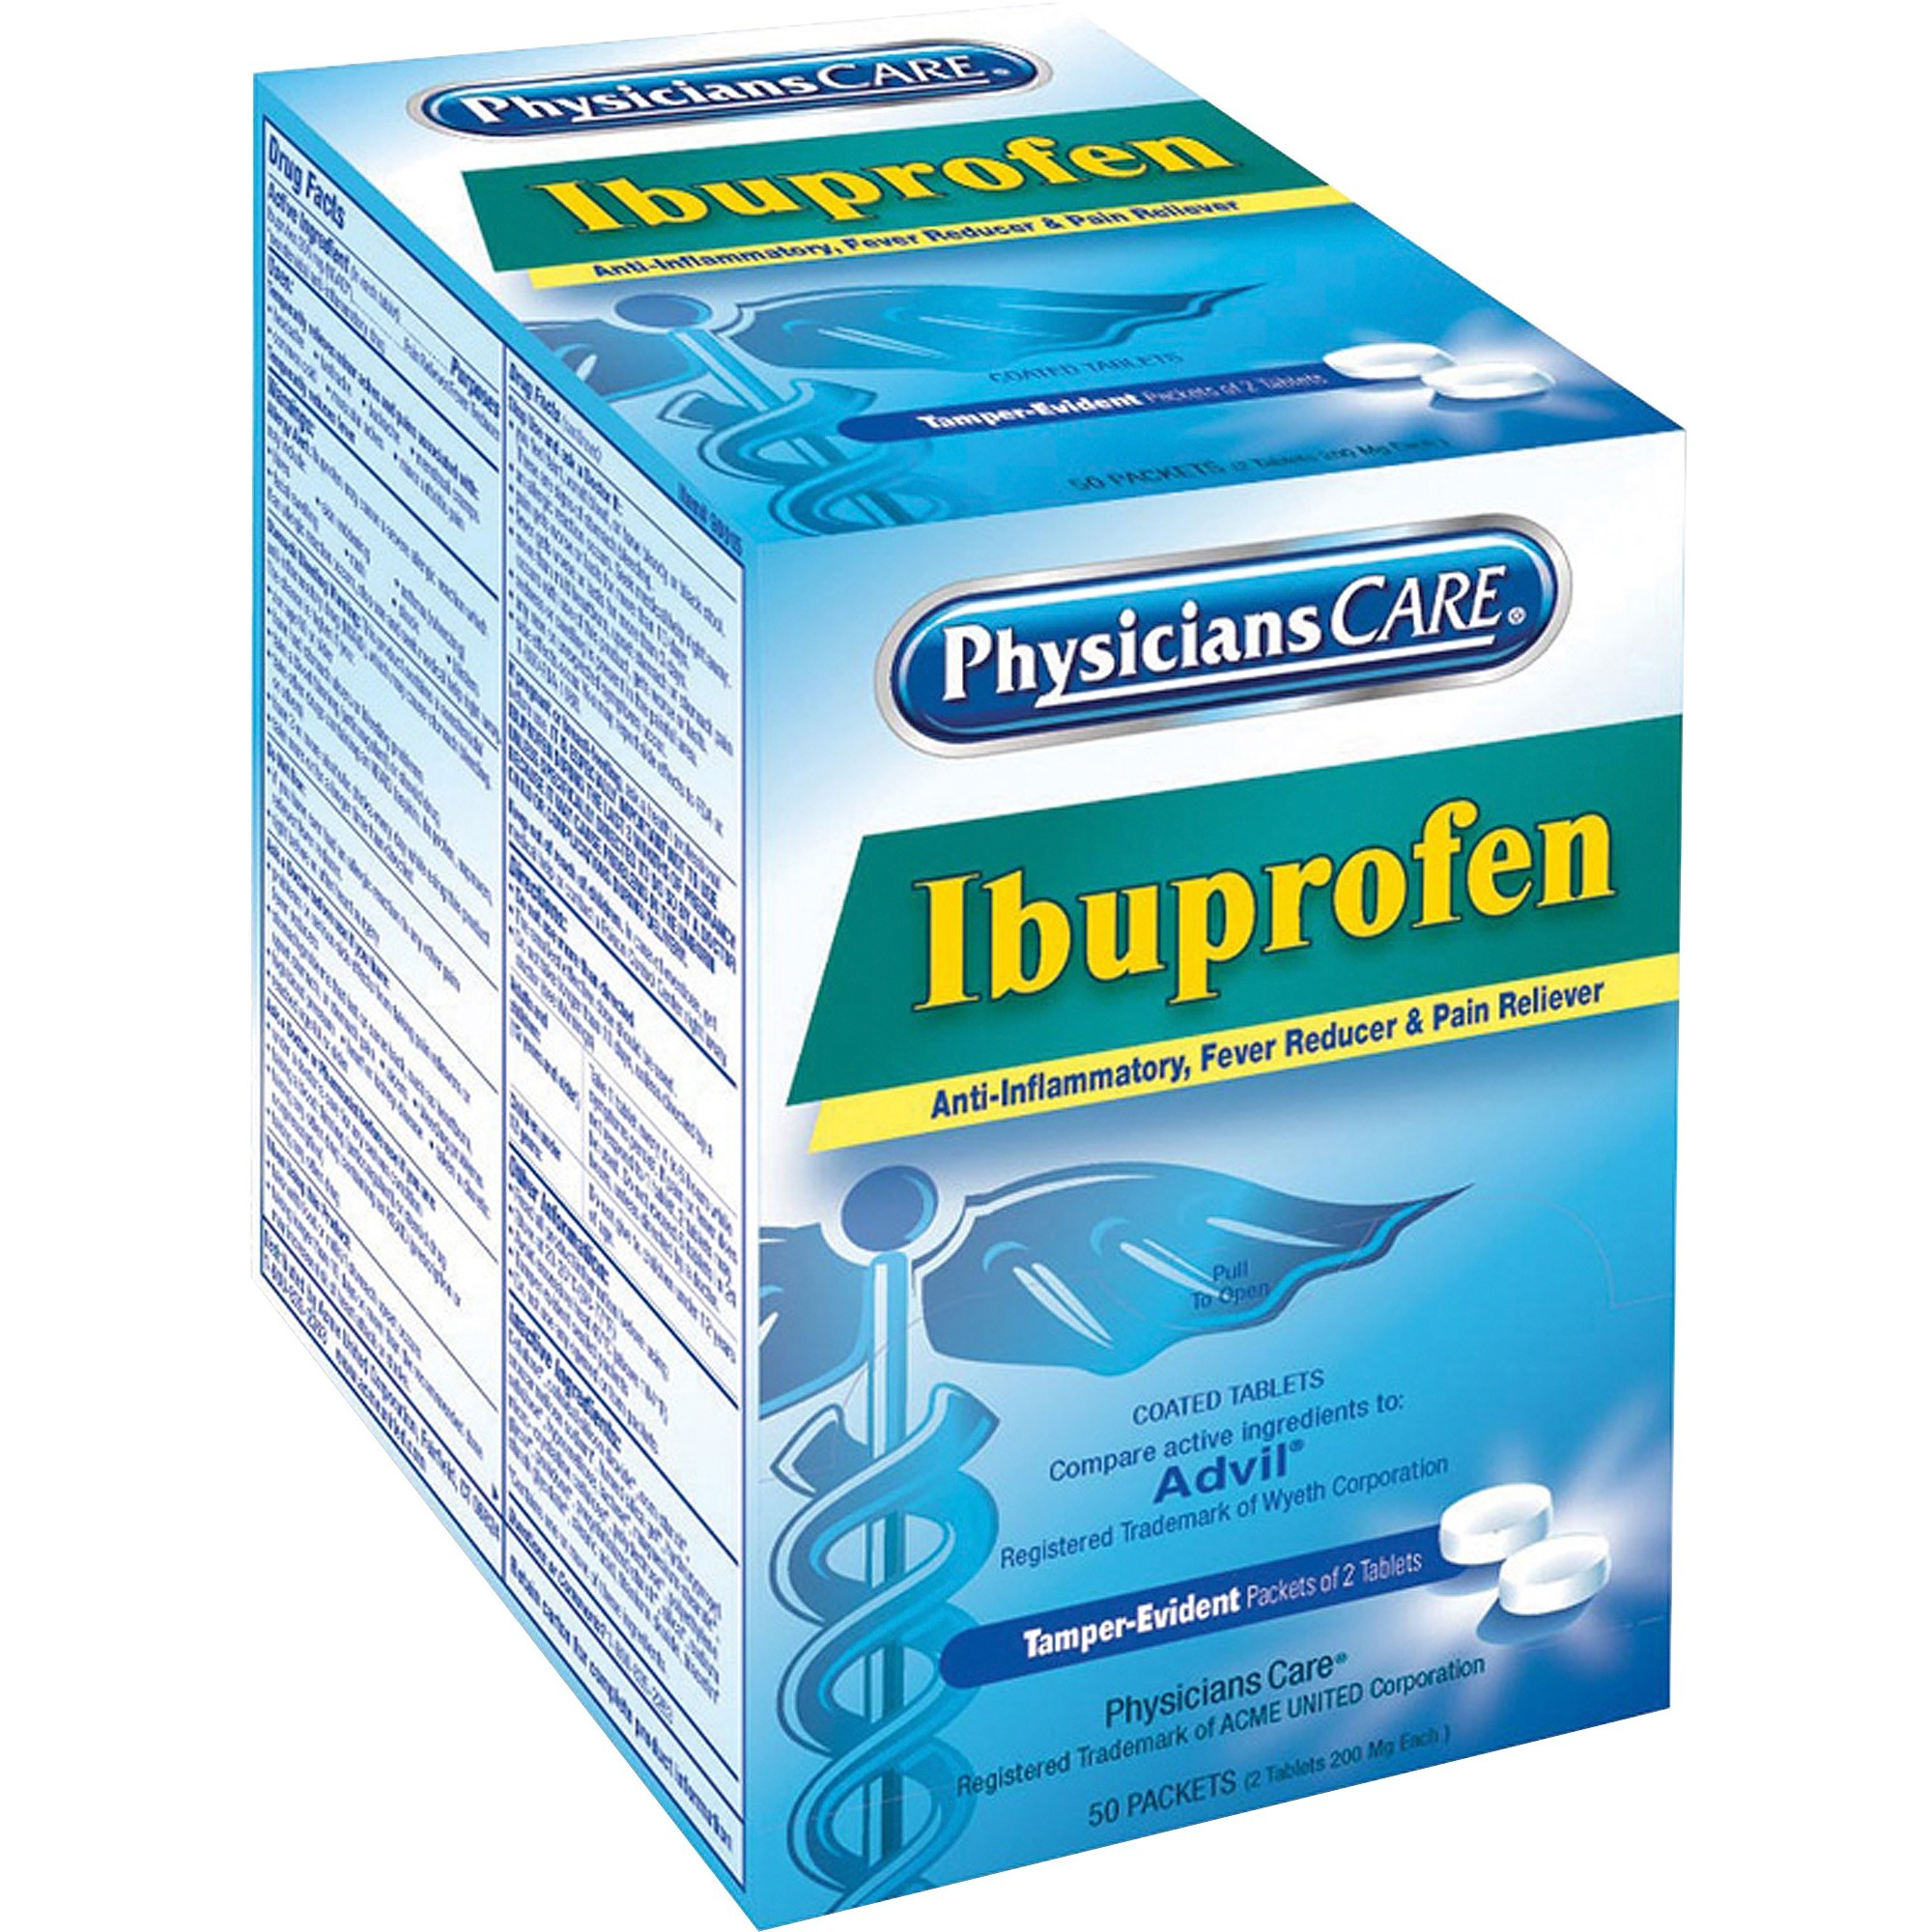 PhysiciansCare, ACM90015, St. Vincent Brand Ibuprofen Single Packets, 50 / Box